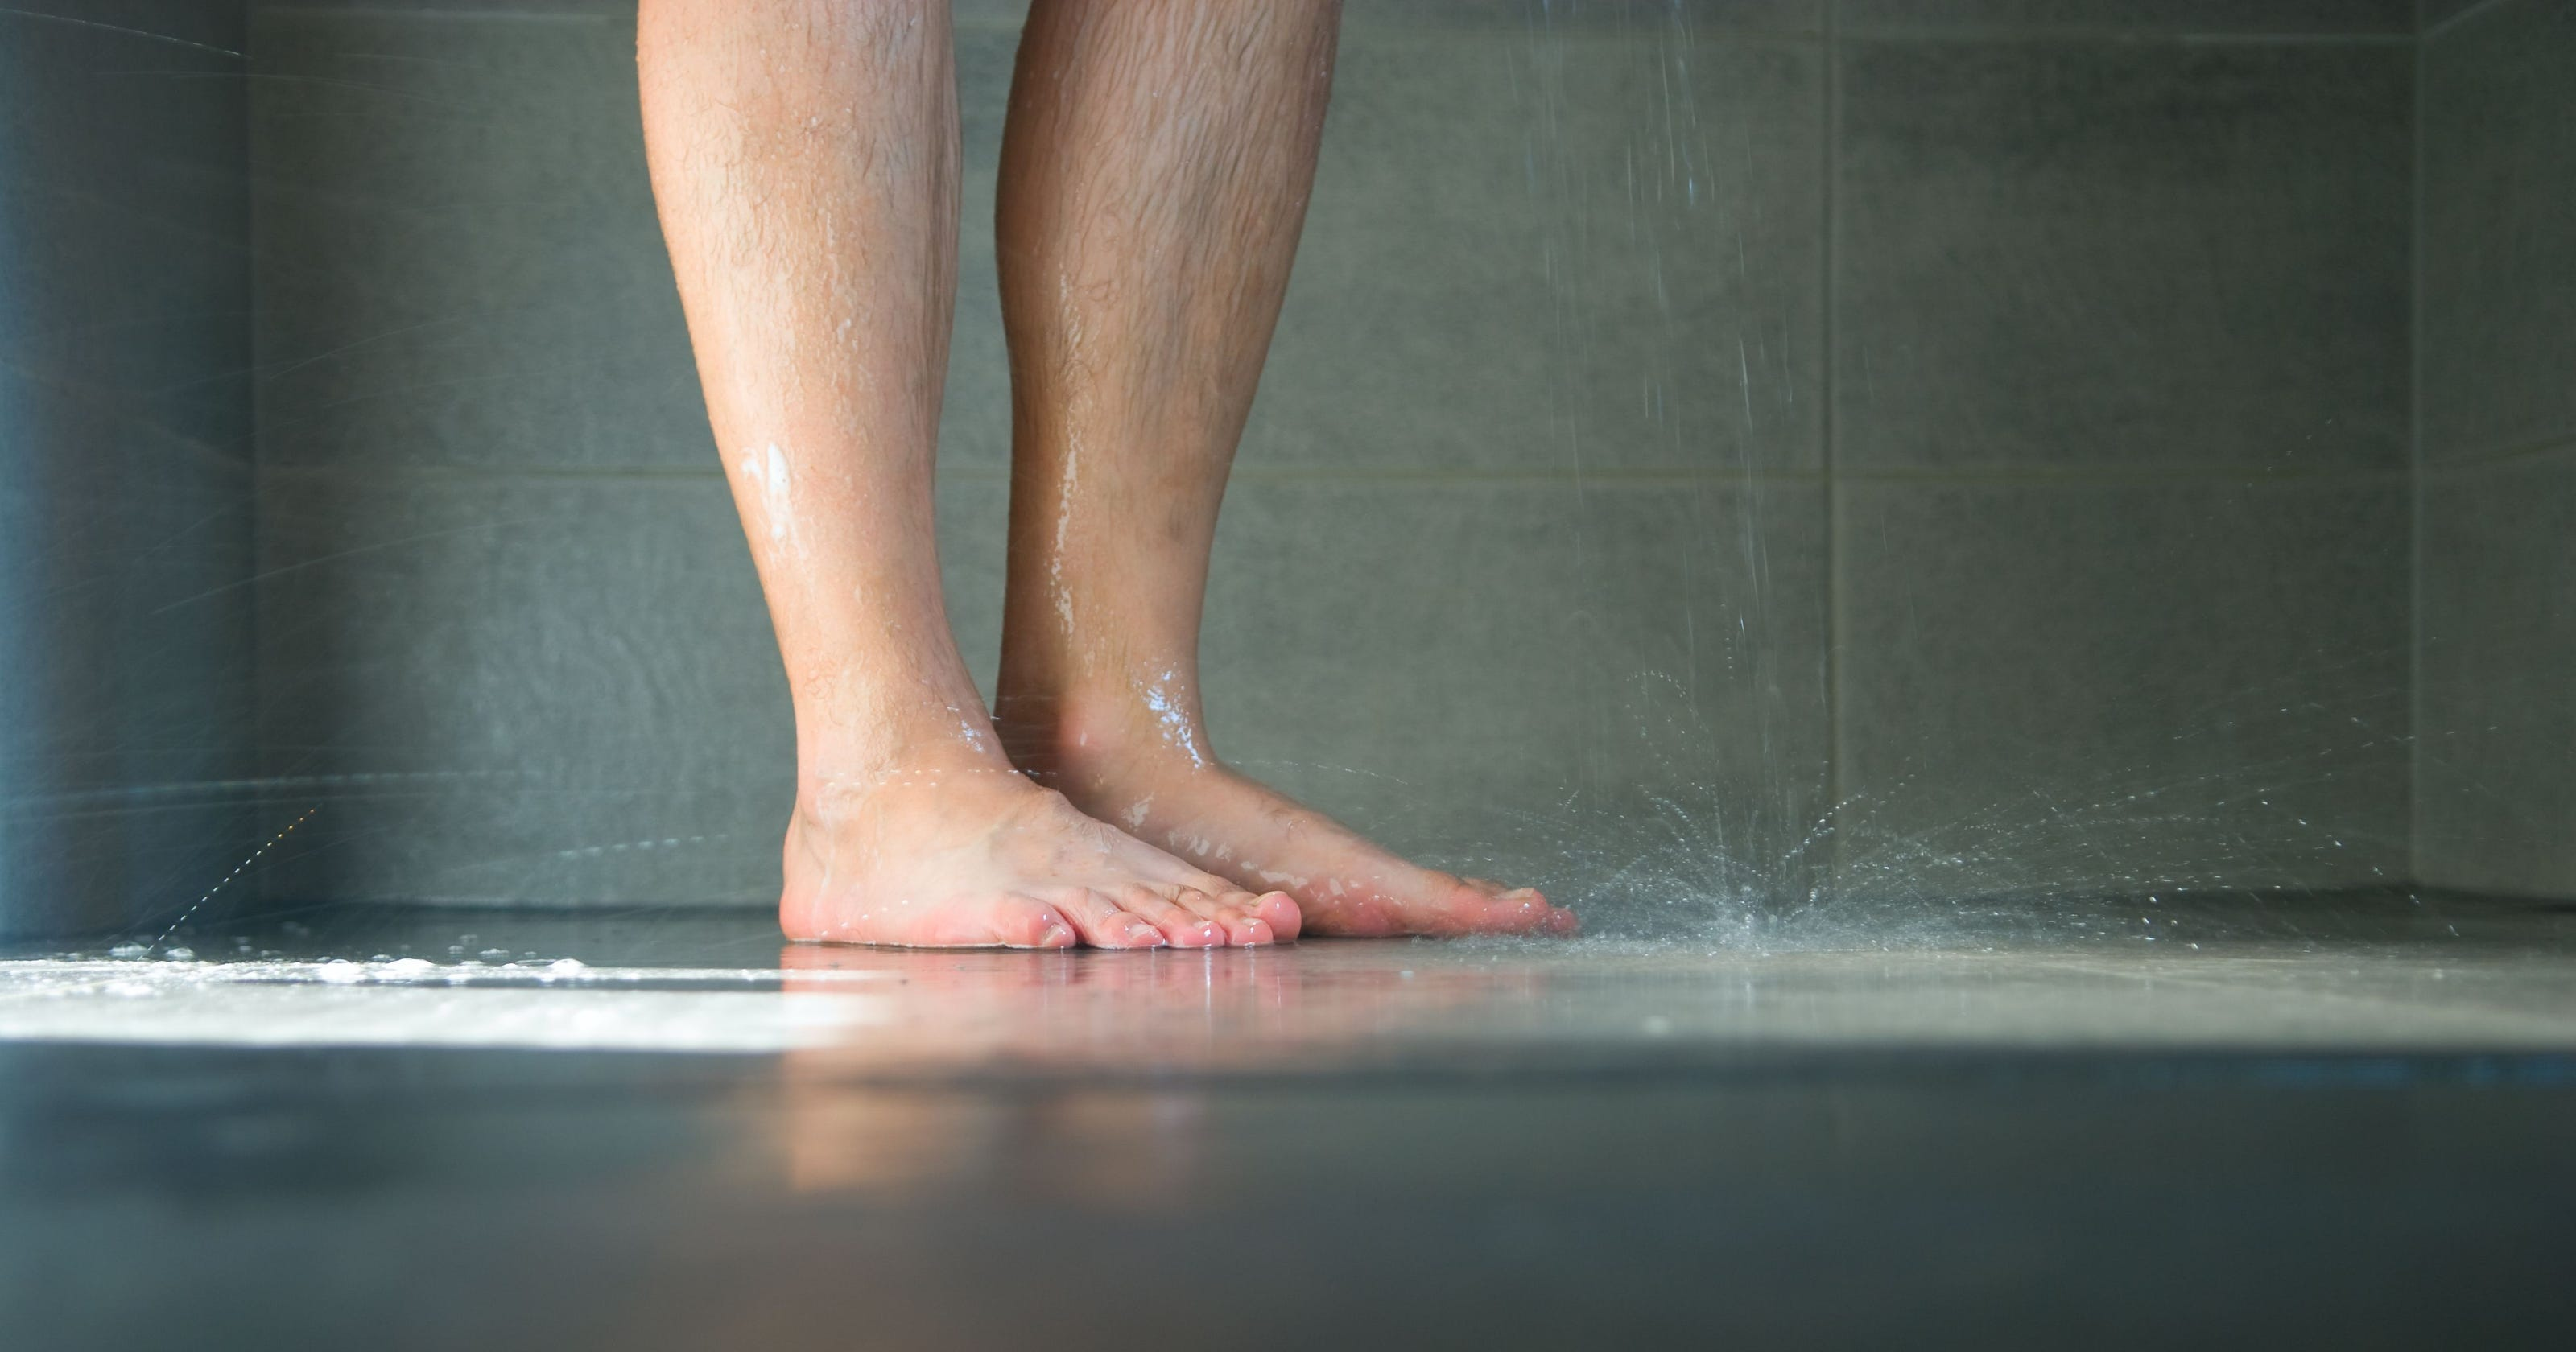 What would happen if you didn't shower for a year?